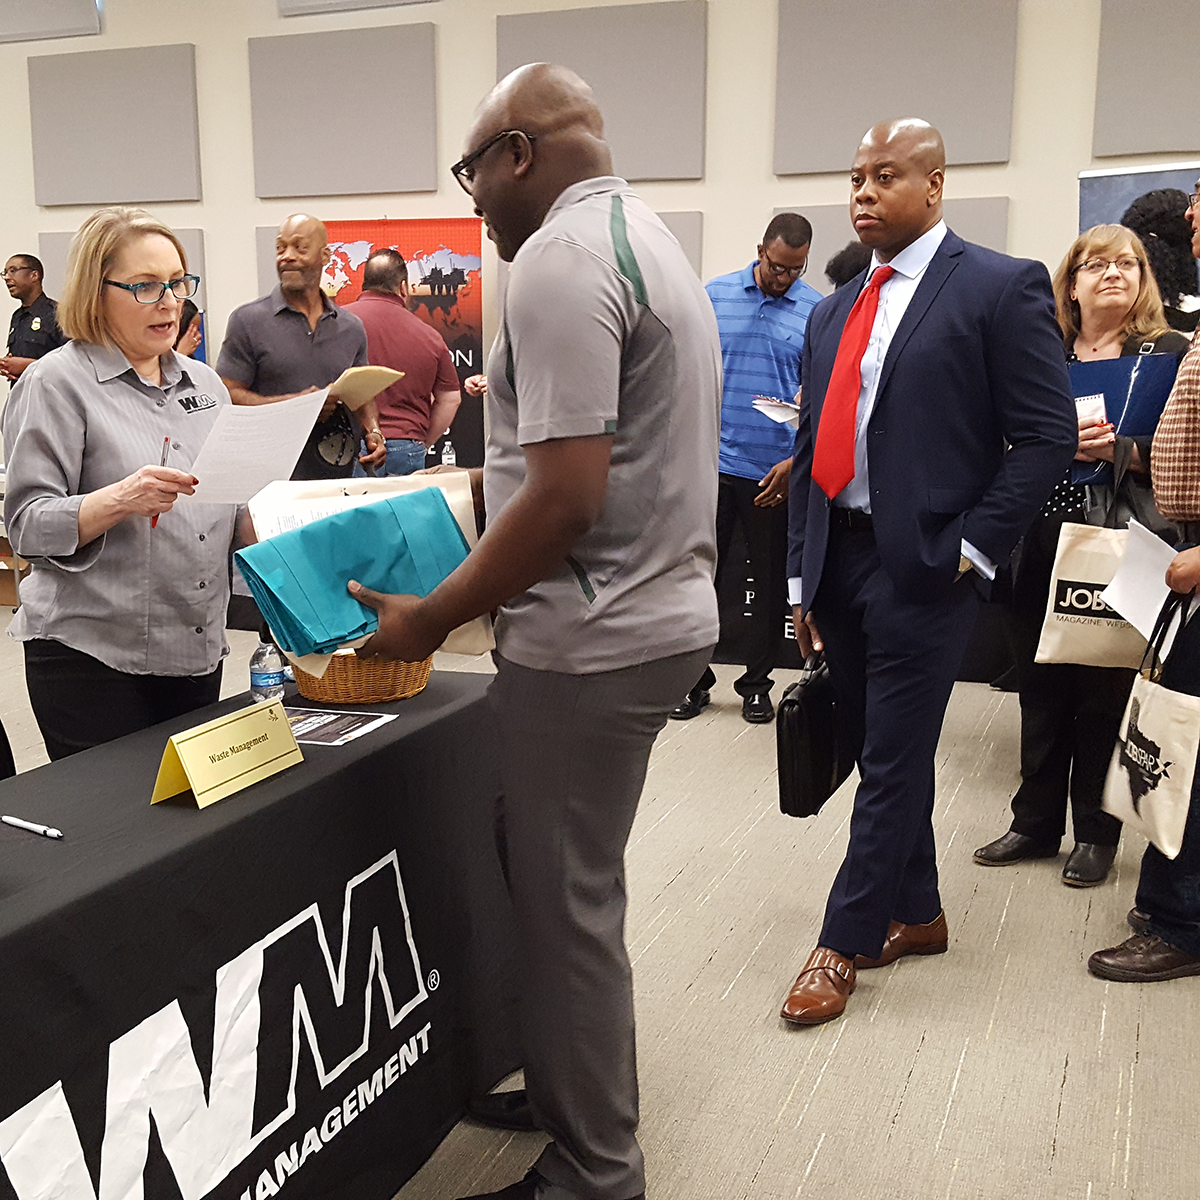 Opportunity Knocks at the NAM/BJM 2019 Spring Career Fair